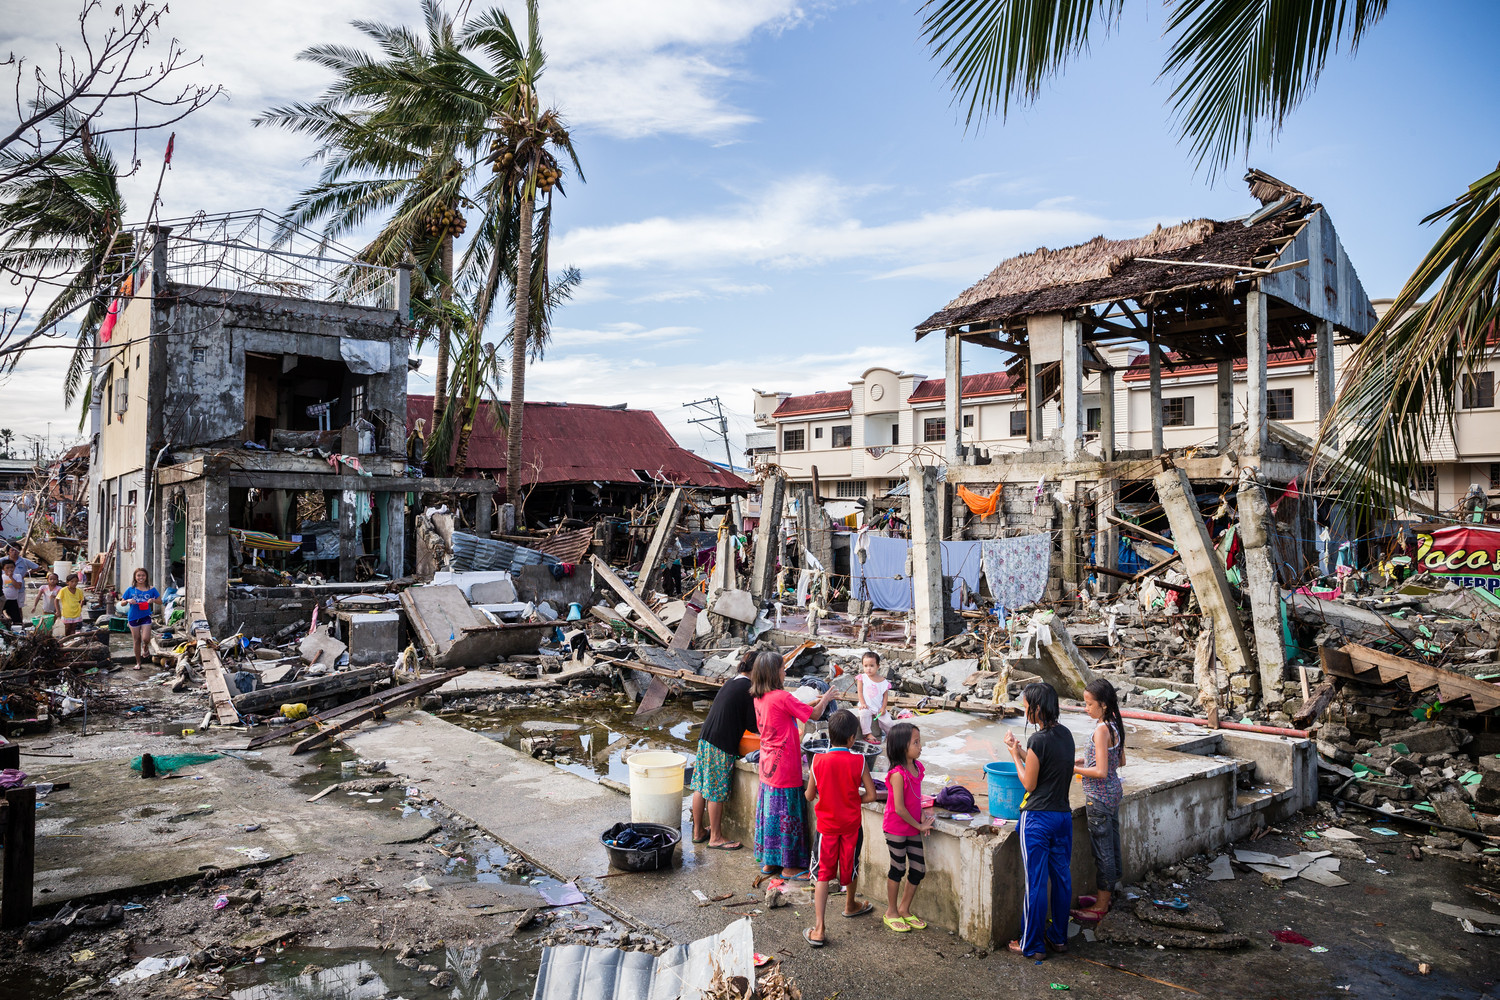 The town of Basey destroyed by Typhoon Haiyan. Samar, Philippines.